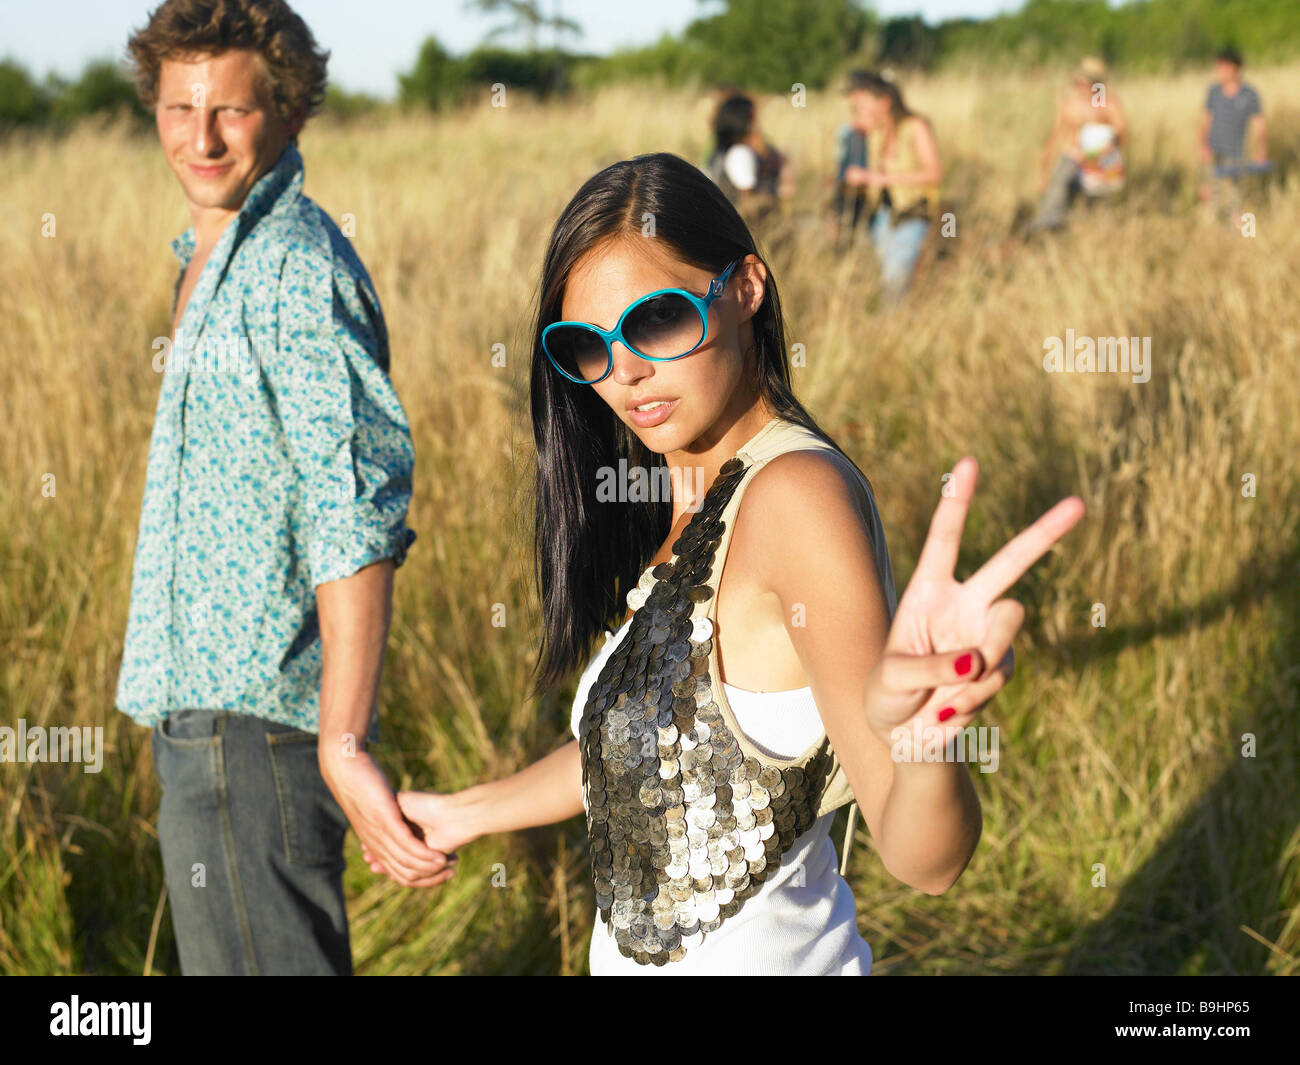 Couple at a festival - Stock Image